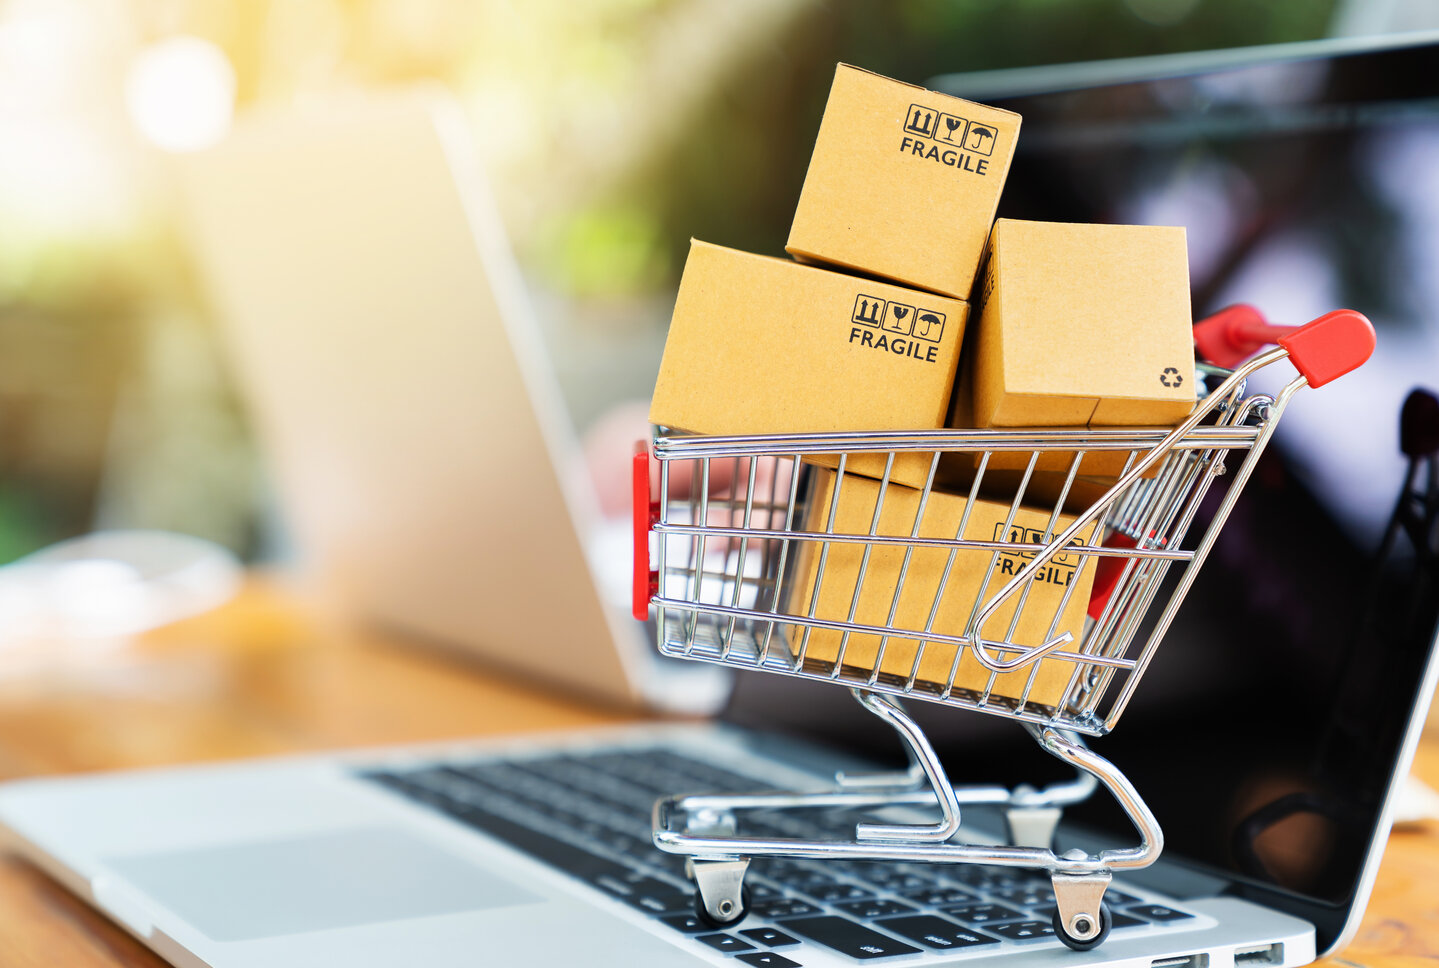 E-commerce packaging is important for brand identity